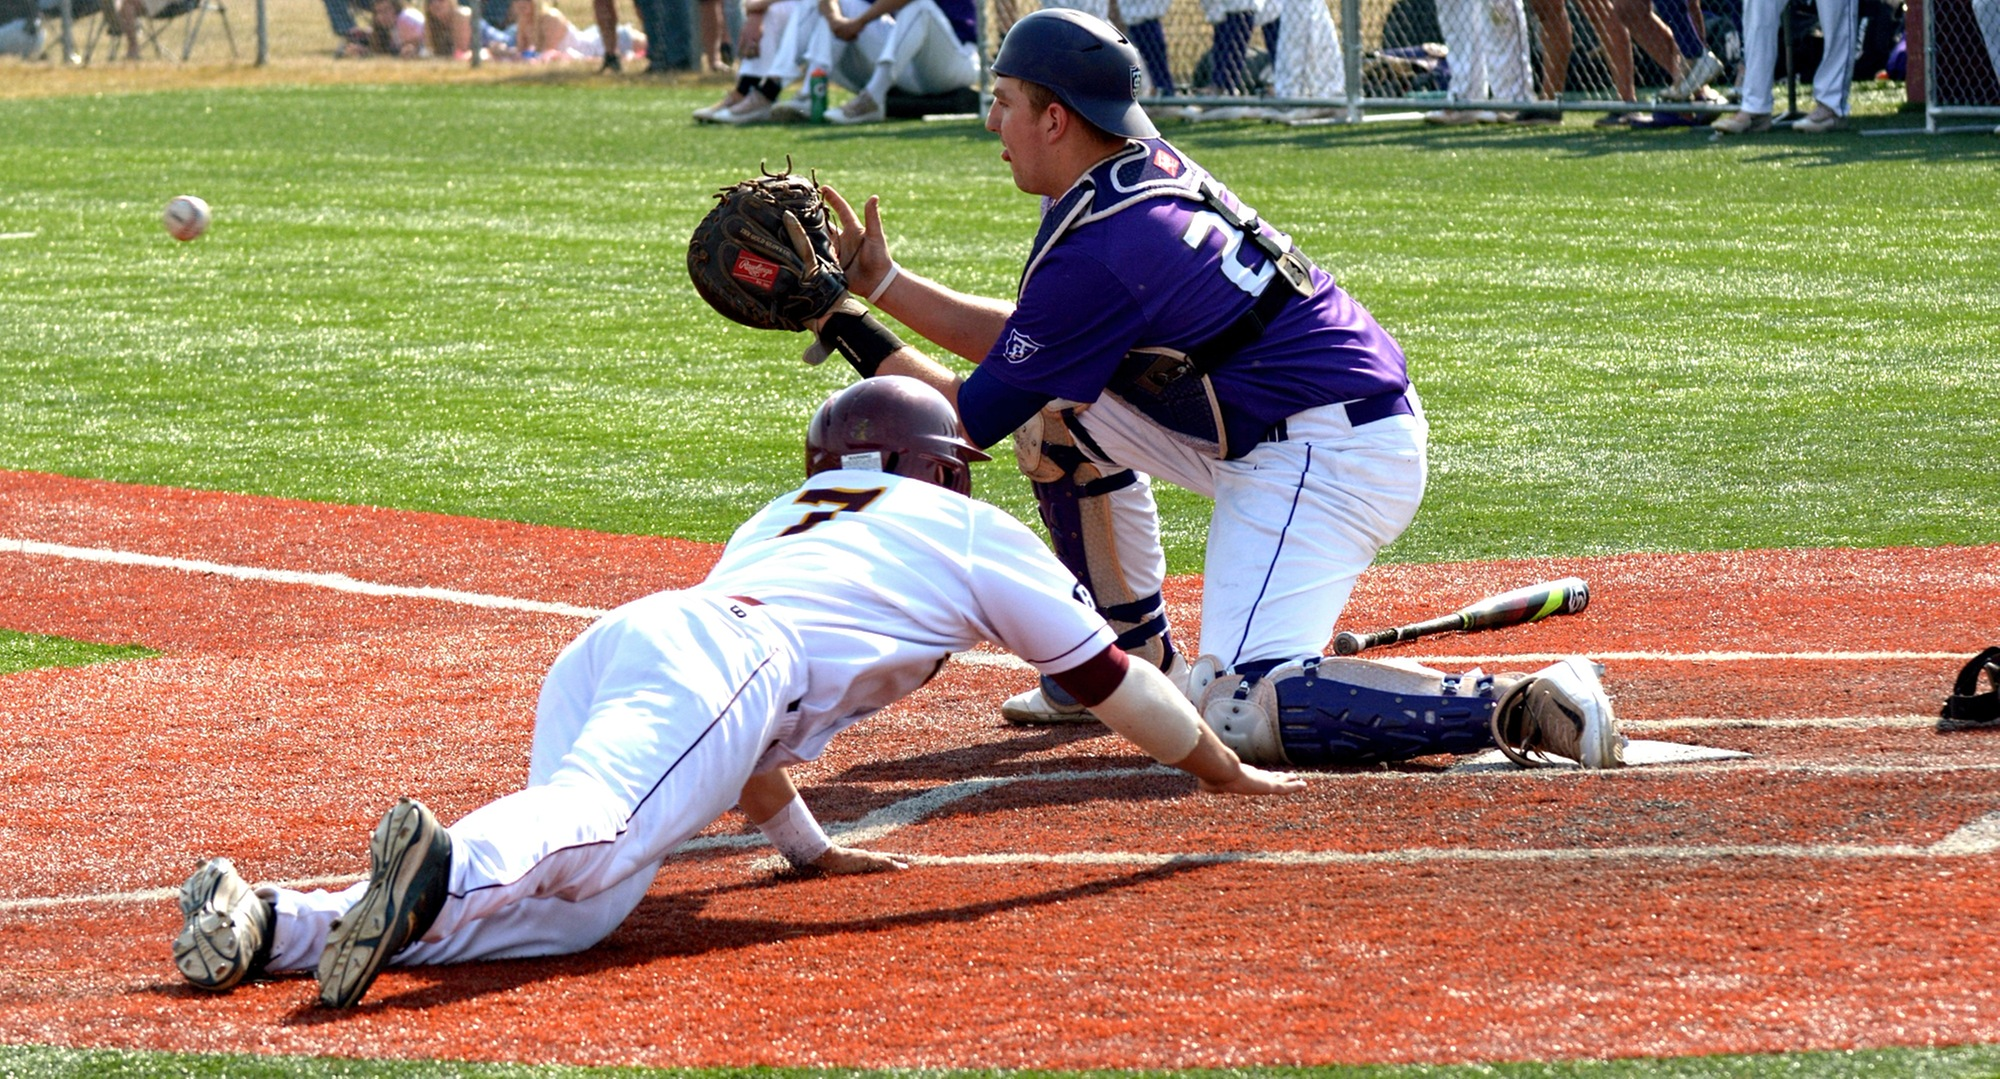 Sophomore Alec Sames slides safely into hom in the second game of the Cobbers' DH with St. Thomas. Hoeft was 3-for-3 in the game.